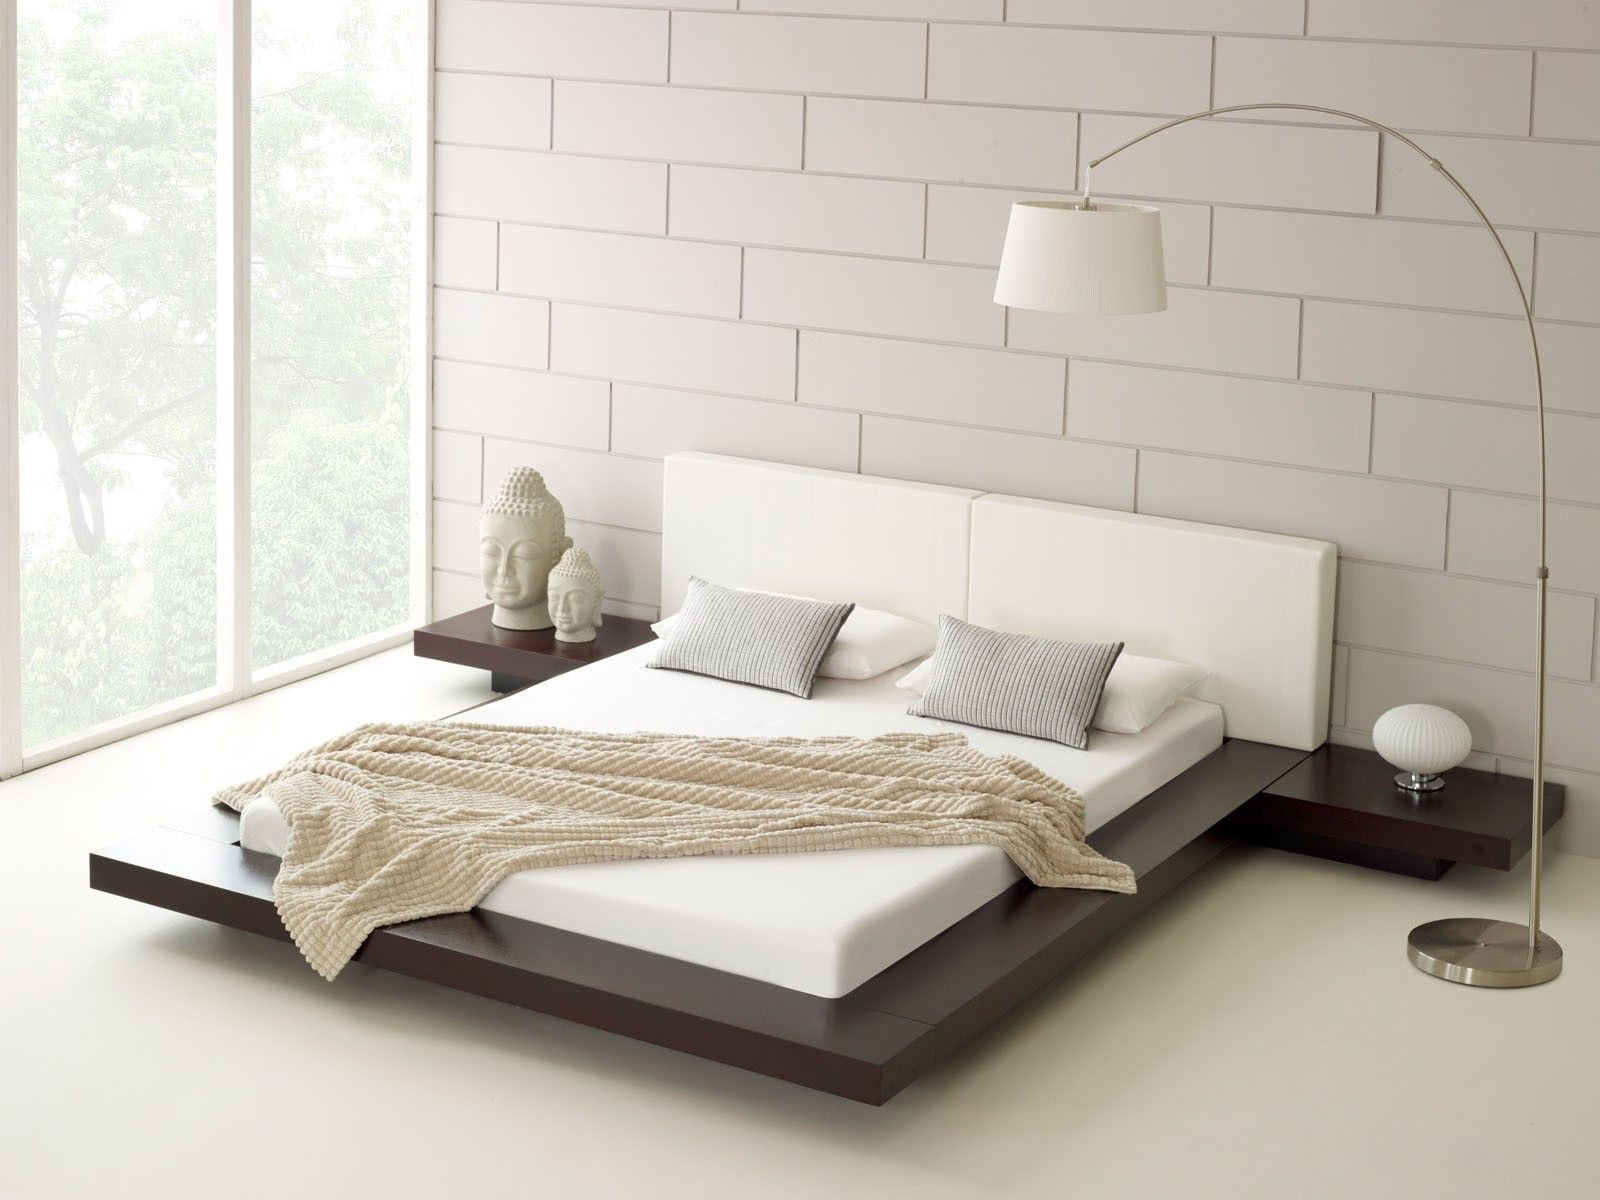 Best Ideas About Japanese Style Bed On Pinterest Low Beds   Contemporary  bedroom furniture designs. Modern Bedroom Furniture Modern Beds Headboards White Small